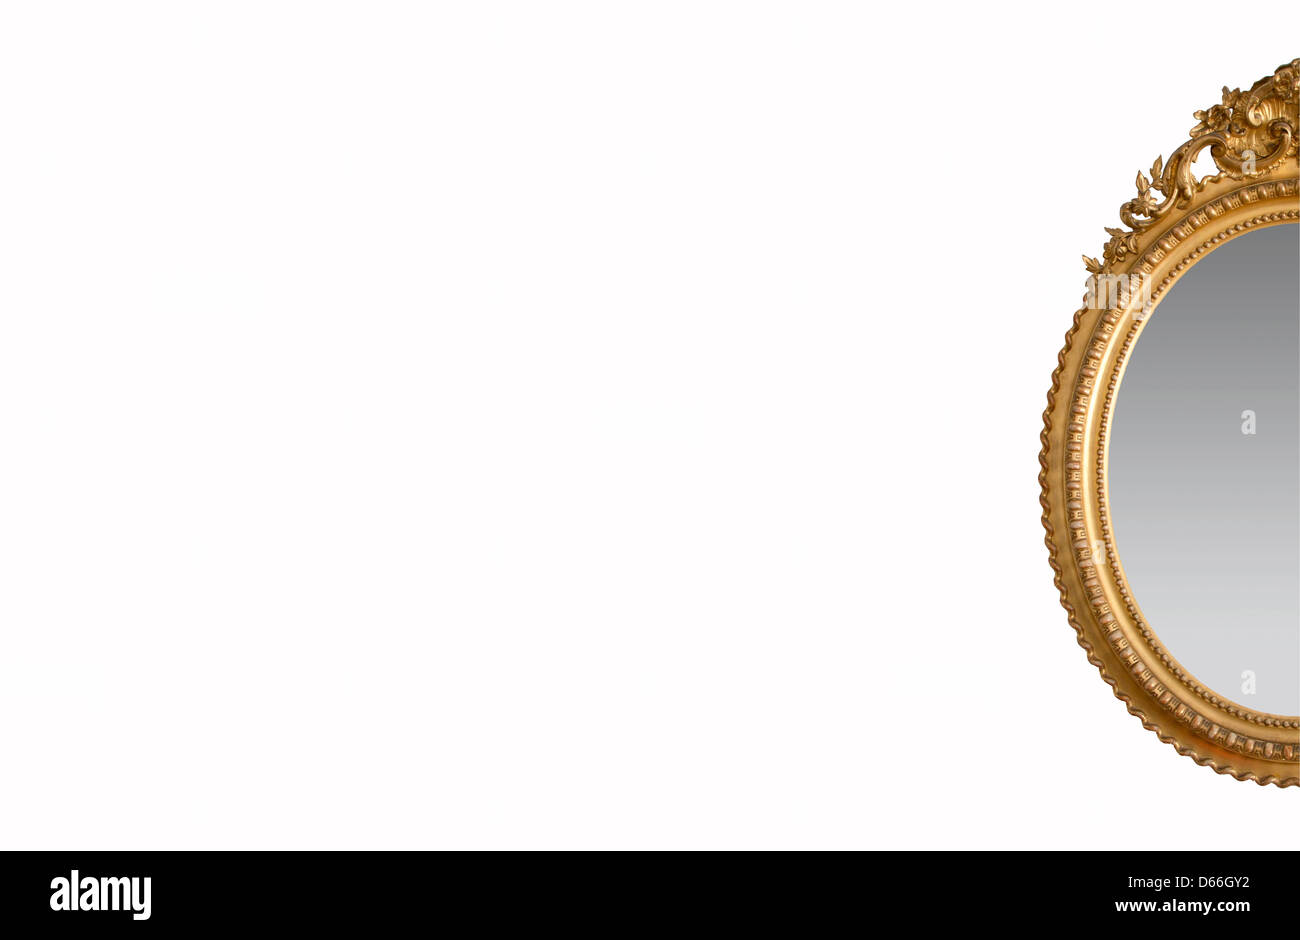 An ornate golden mirror on a white background. - Stock Image